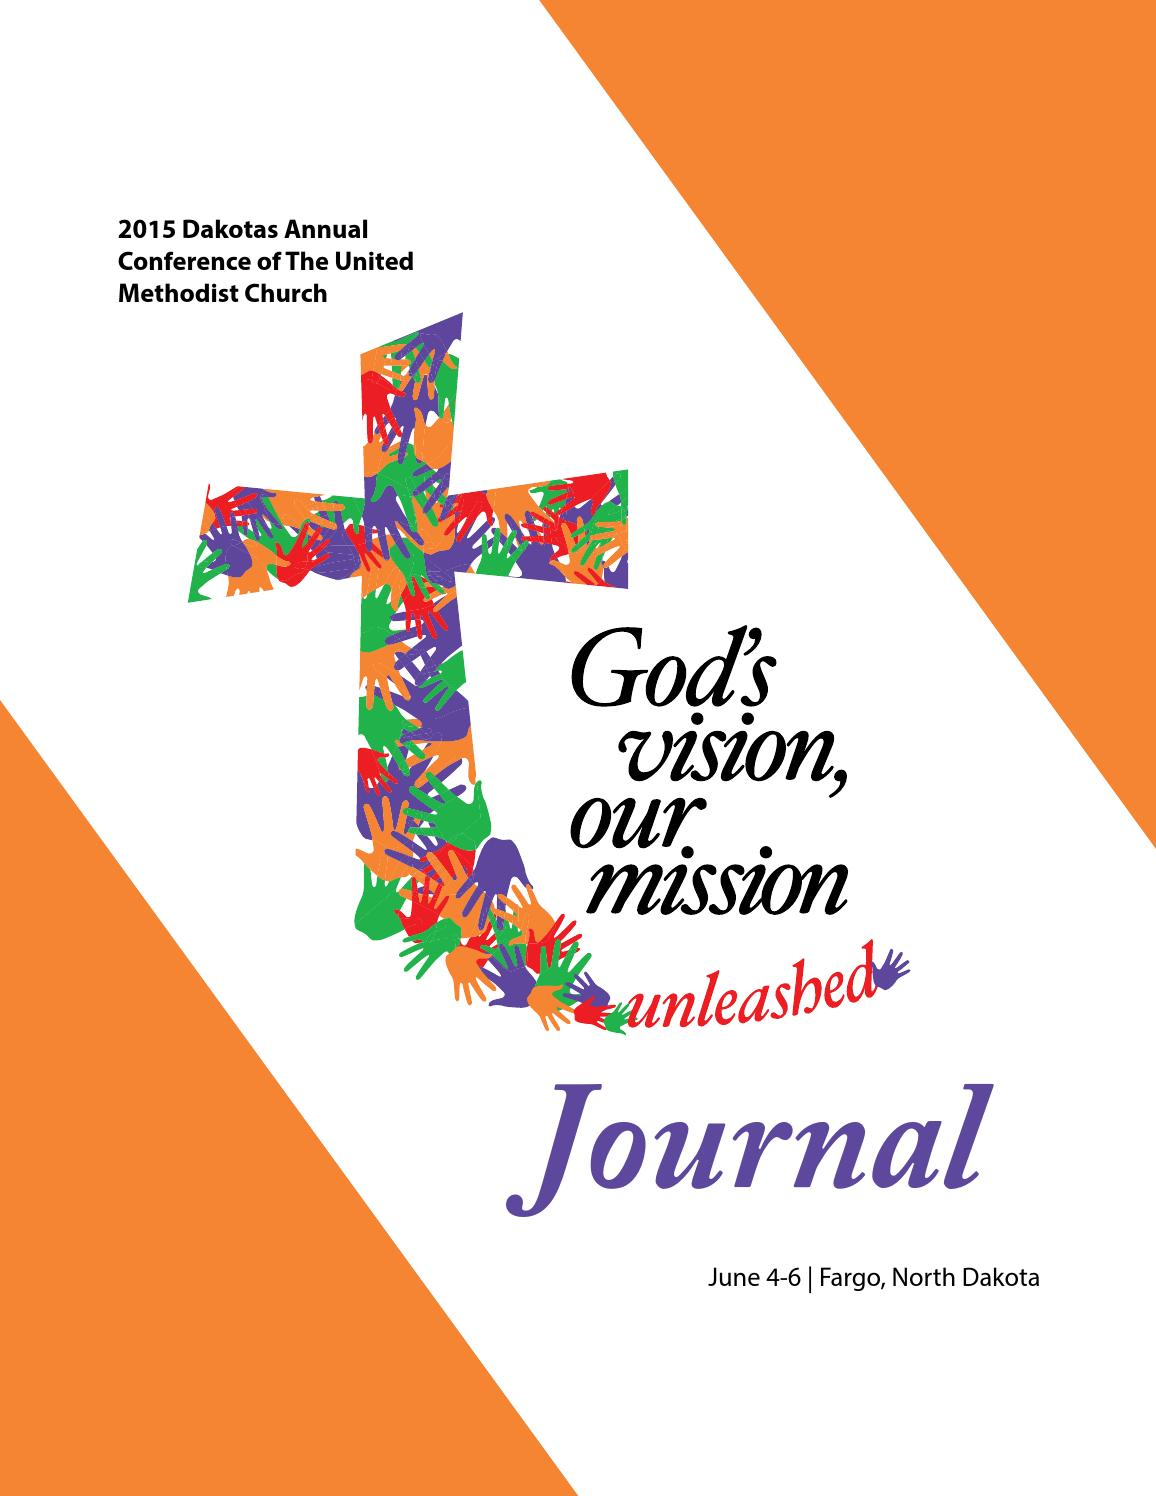 2015 Journal by Dakotas Conference UMC issuu